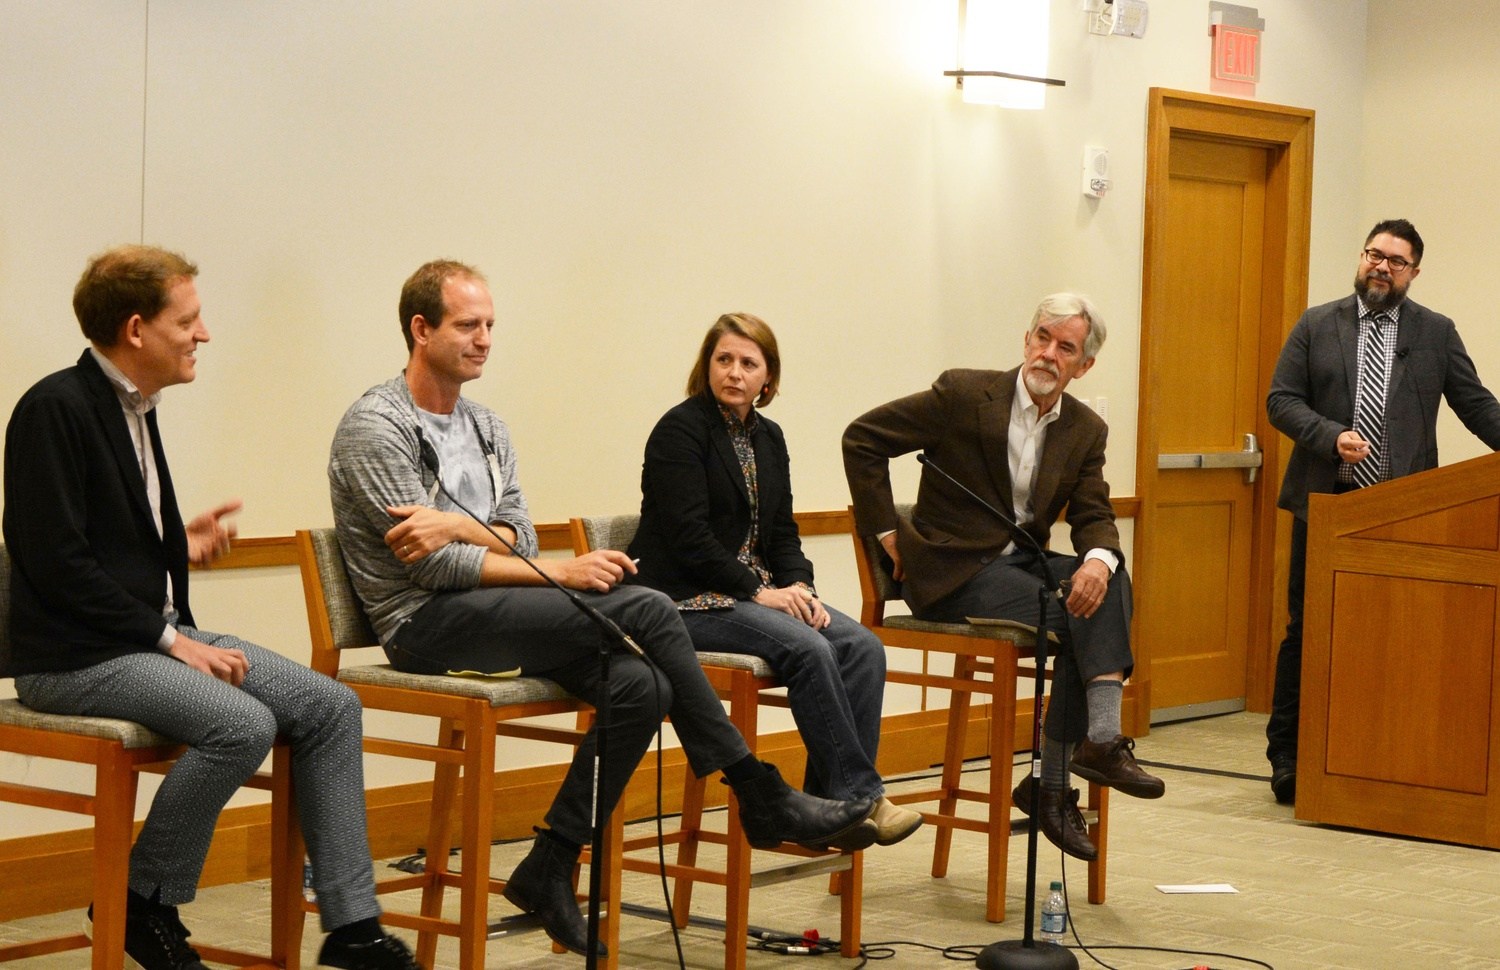 From left to right: Benjamen Walker of Radiotopia's podcast Theory of Everything, Jake Shapiro and Kerri Hoffman of Public Radio Exchange, and Chris Lydon of Radio Open Source speak on the future of podcasts. The panel at the Law School on Tuesday was moderated by Berkman Center for Internet and Society's Faculty Co-Director Christopher T. Bavitz.